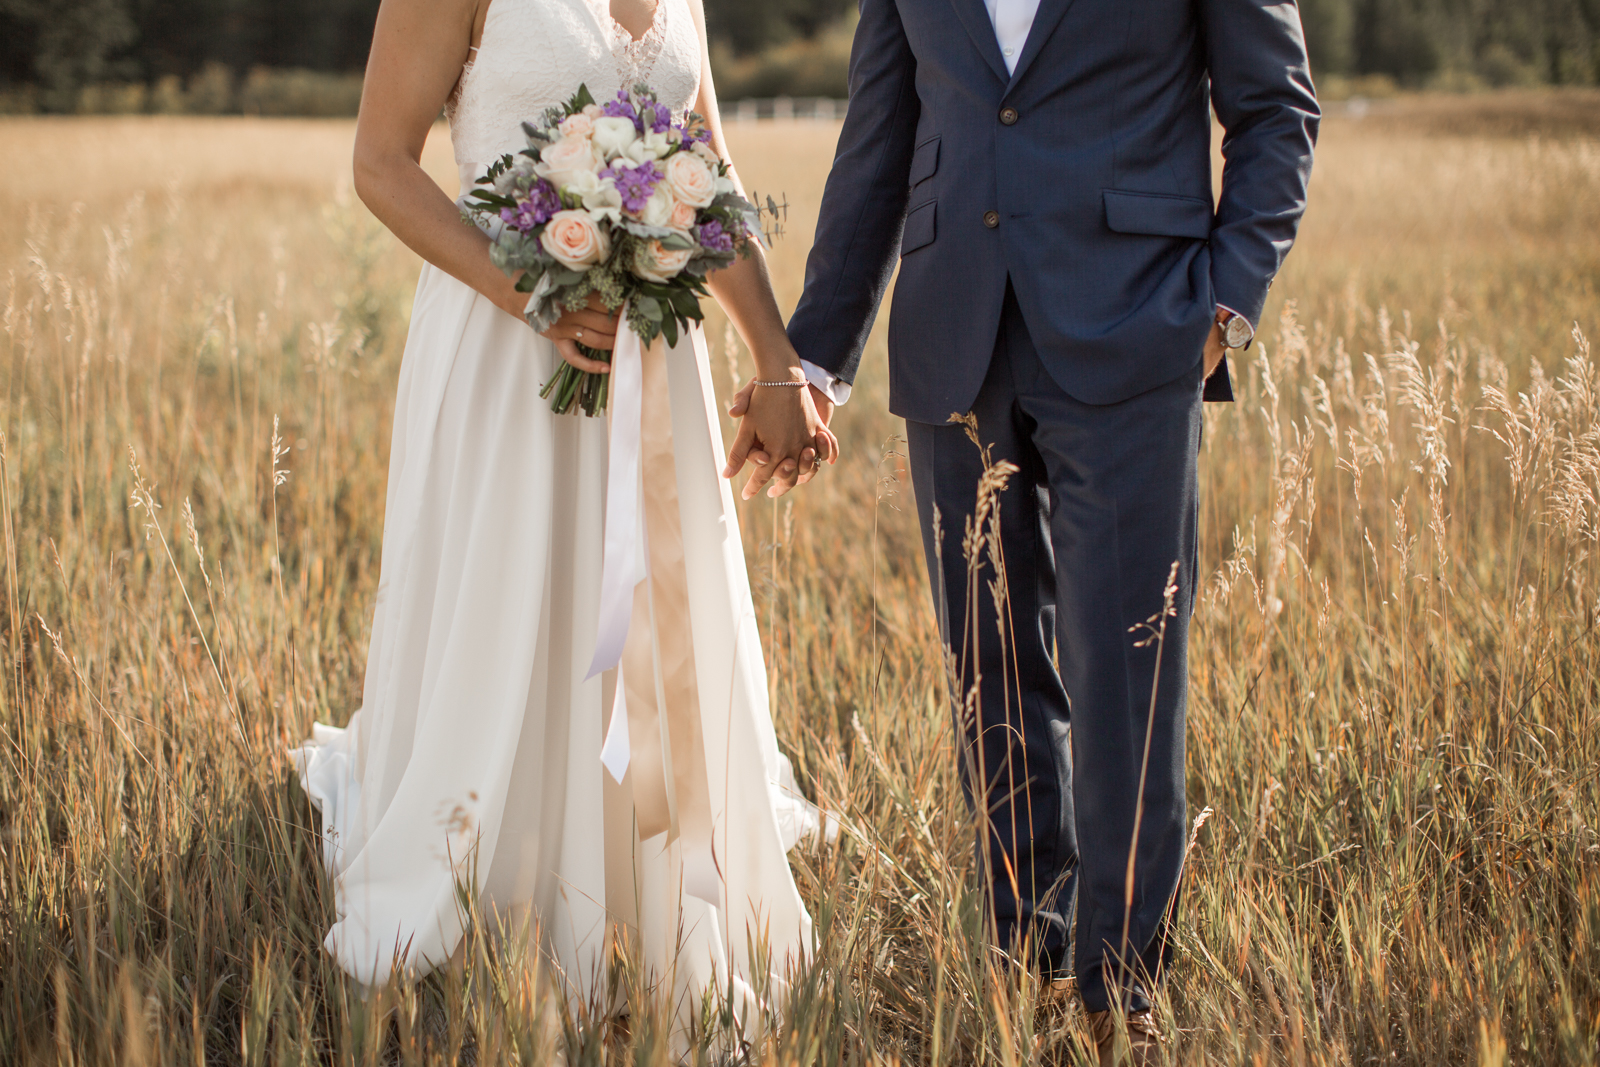 51-willow_and_wolf_photography_nicole_and_gary_cranbrook_wedding_blog